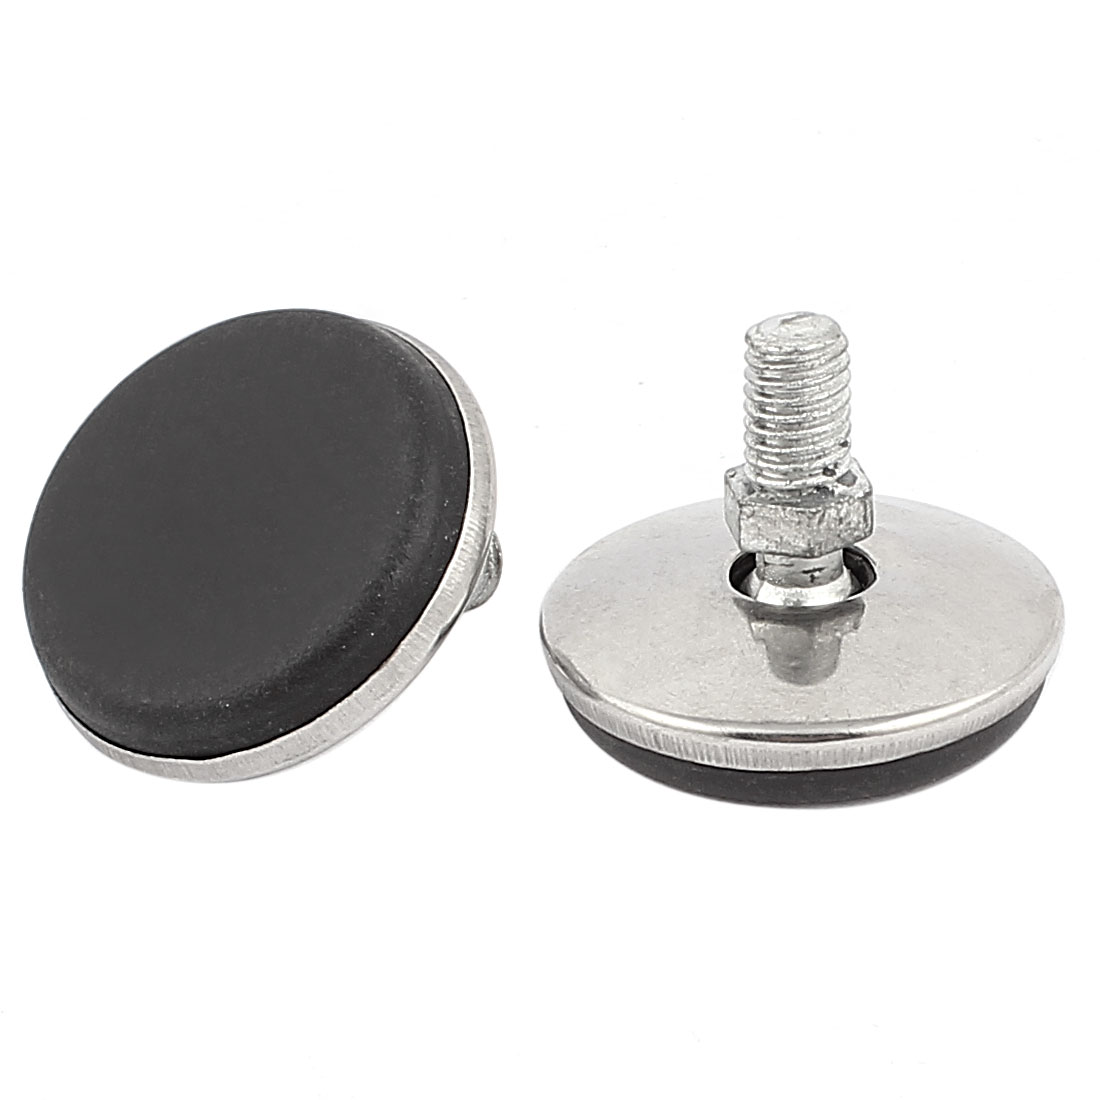 Metal Threaded Rod Round Plastic Base Leveling Foot 2 Pcs